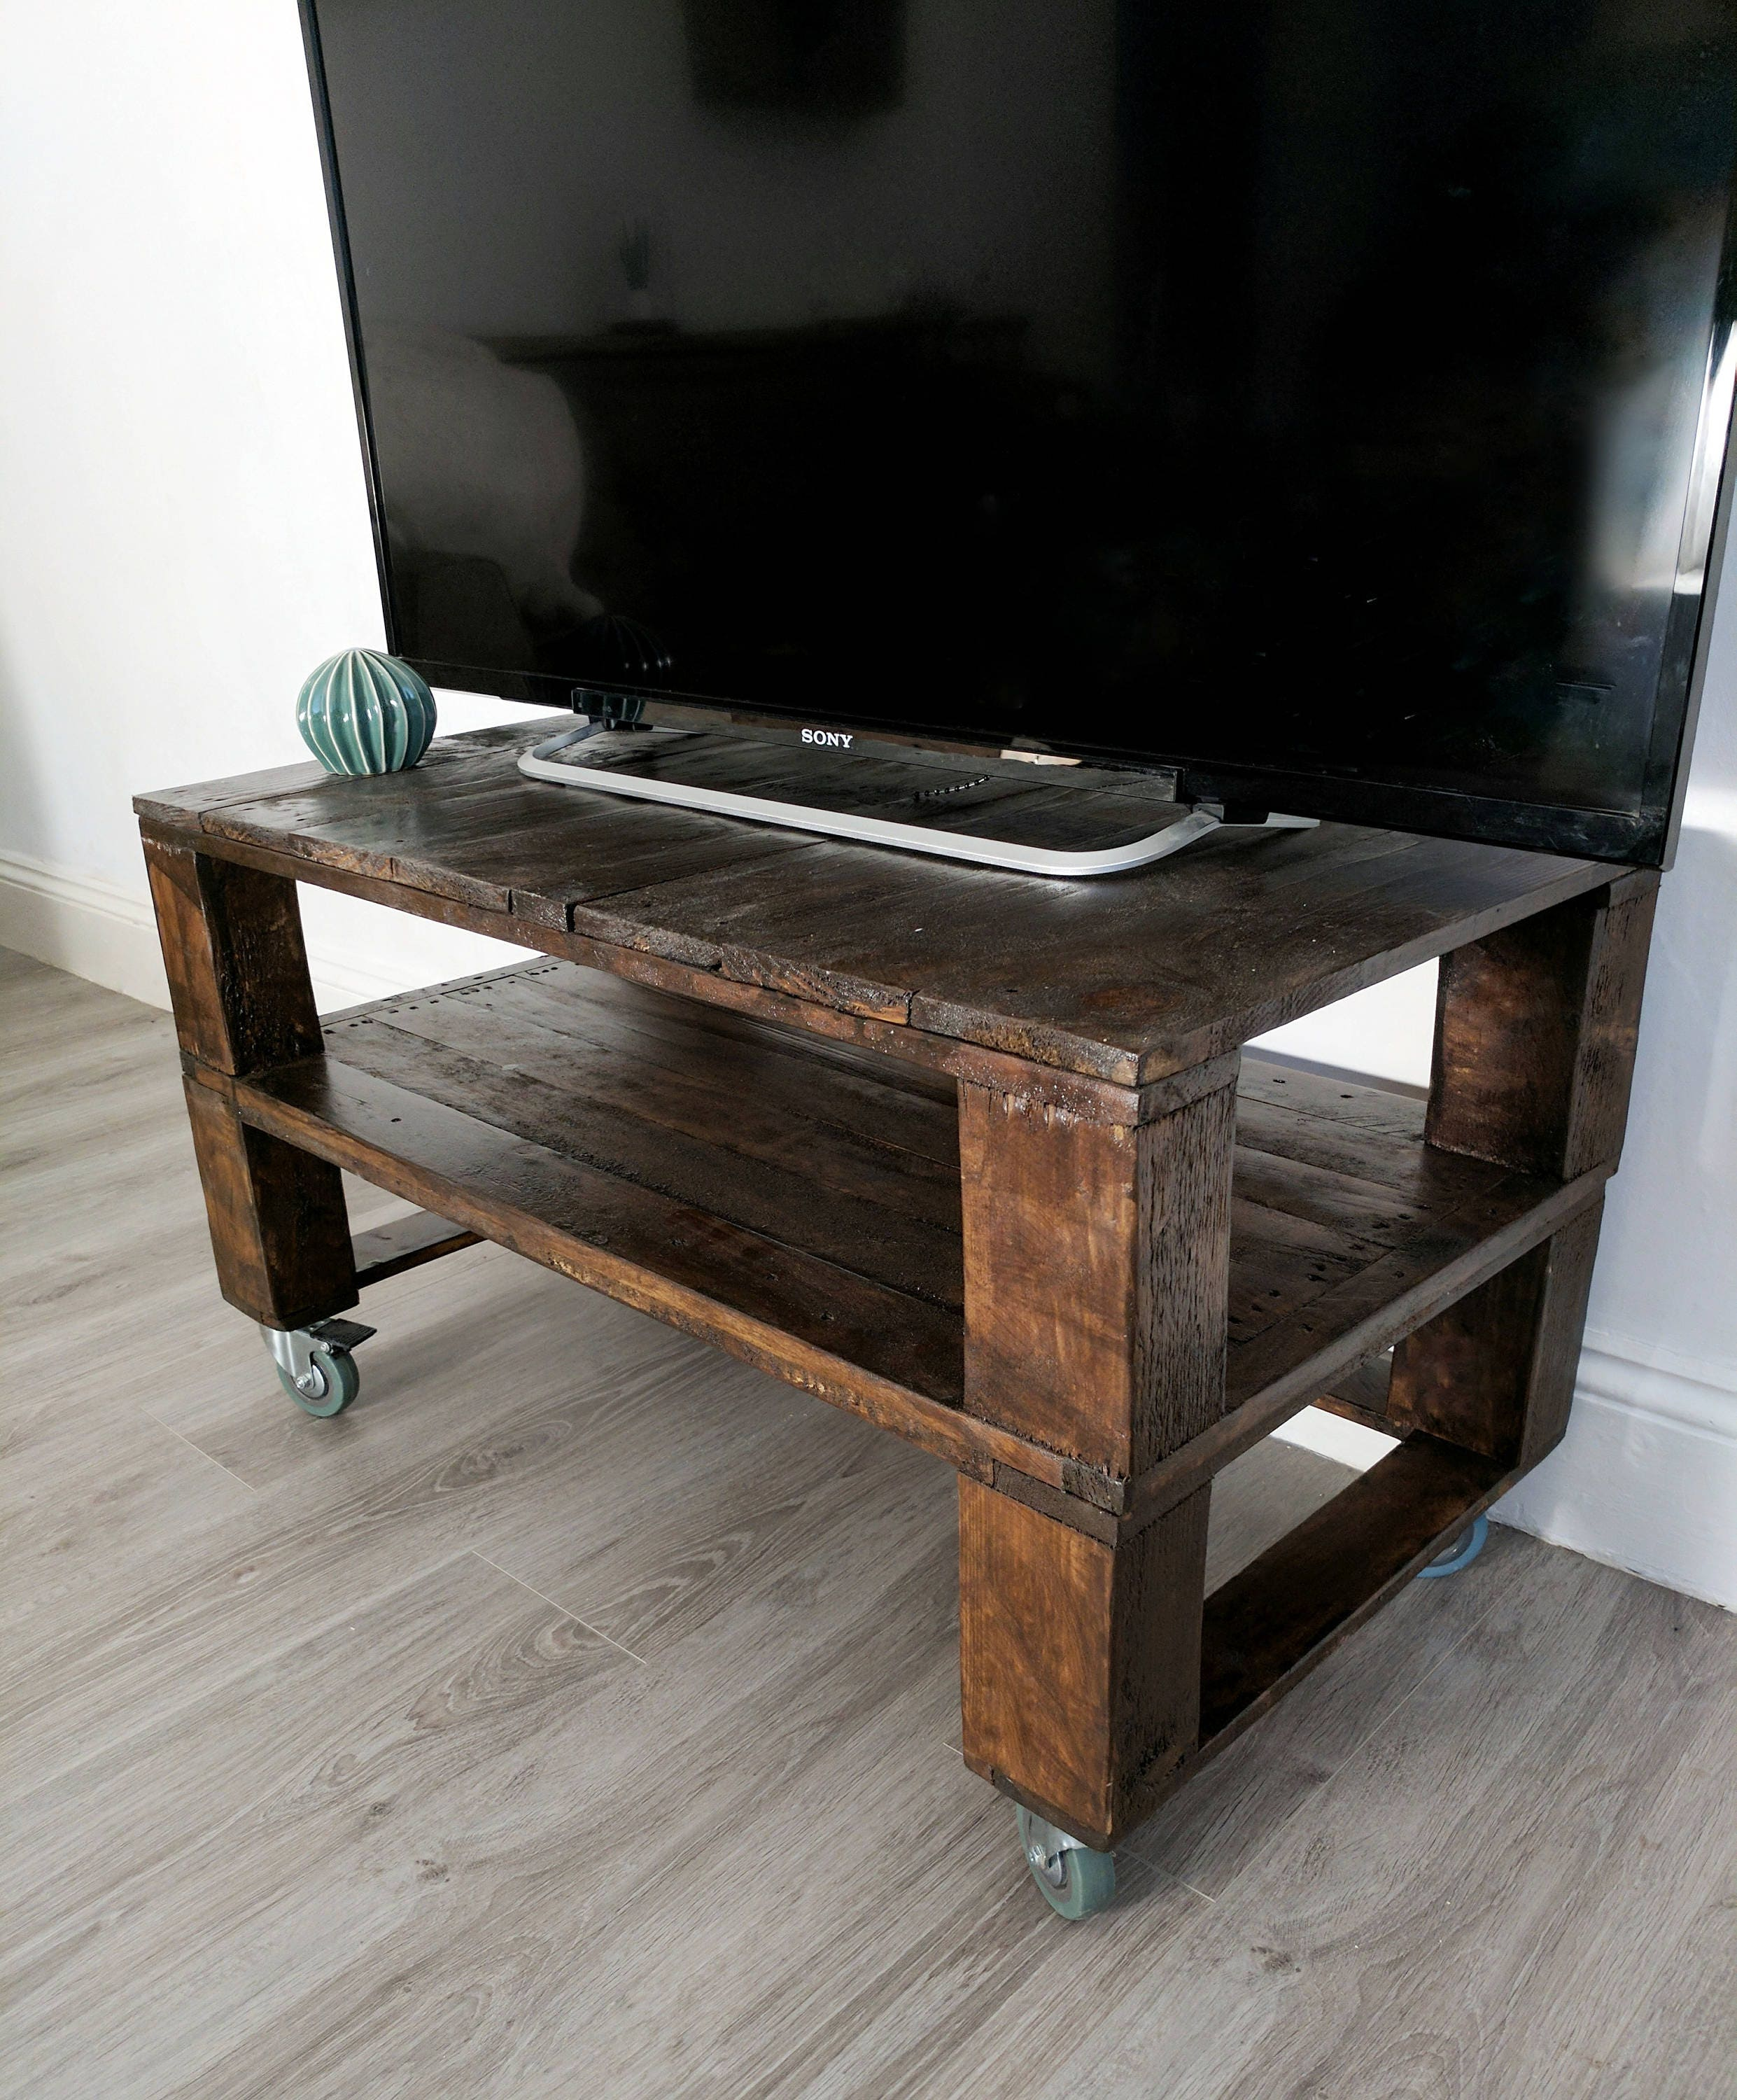 Reclaimed Timber Tv Stand Media Console TALL TELE ALUS in